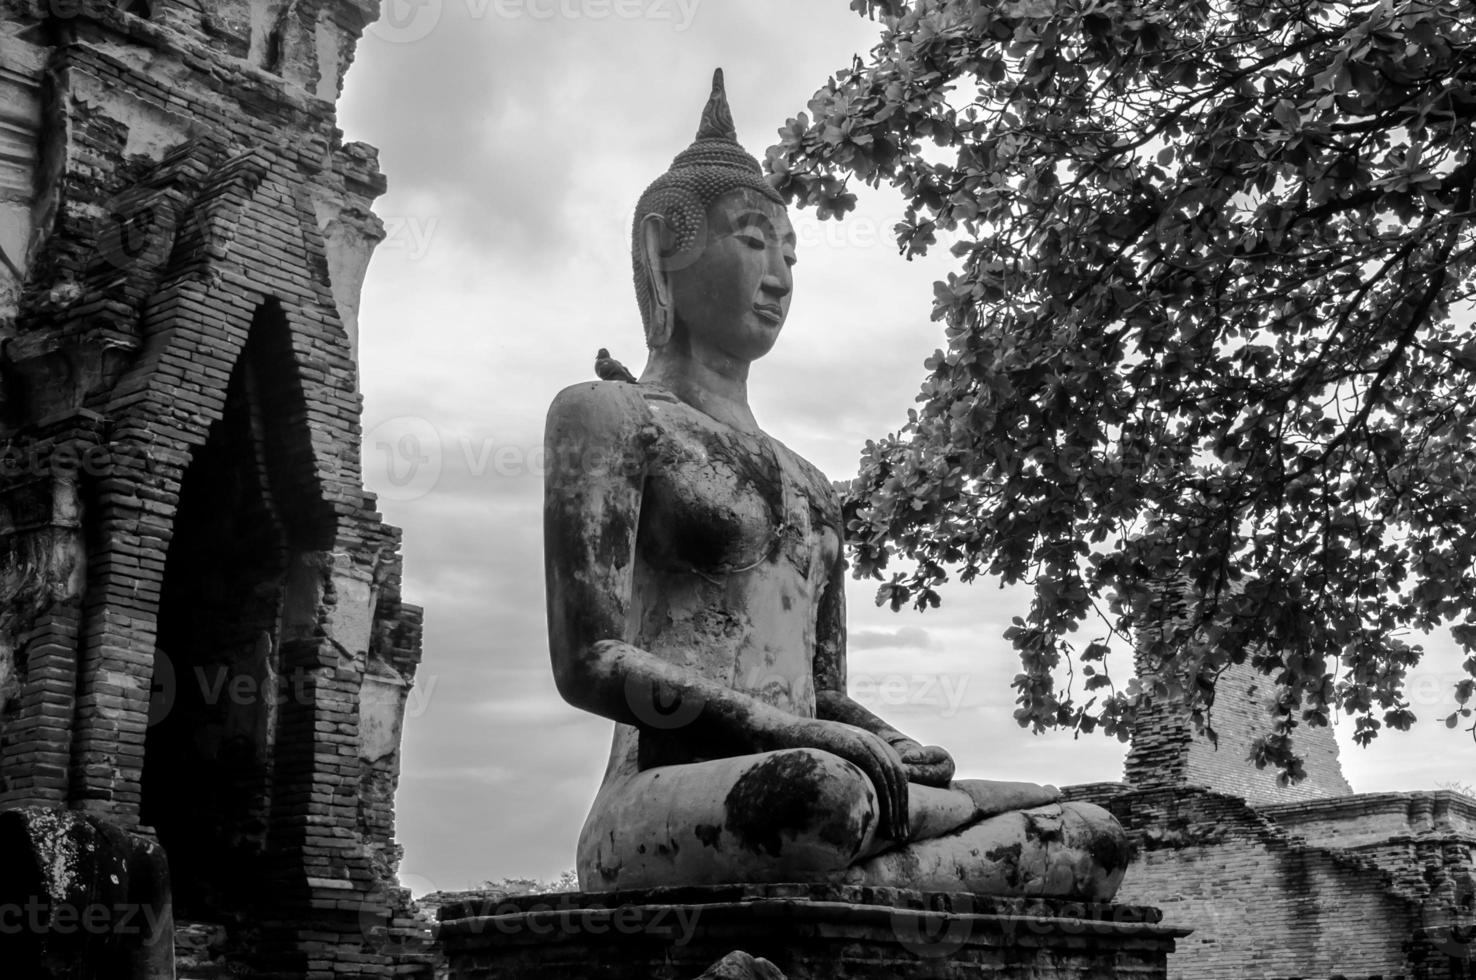 Ruin of ancient buddha temple in Thailand photo